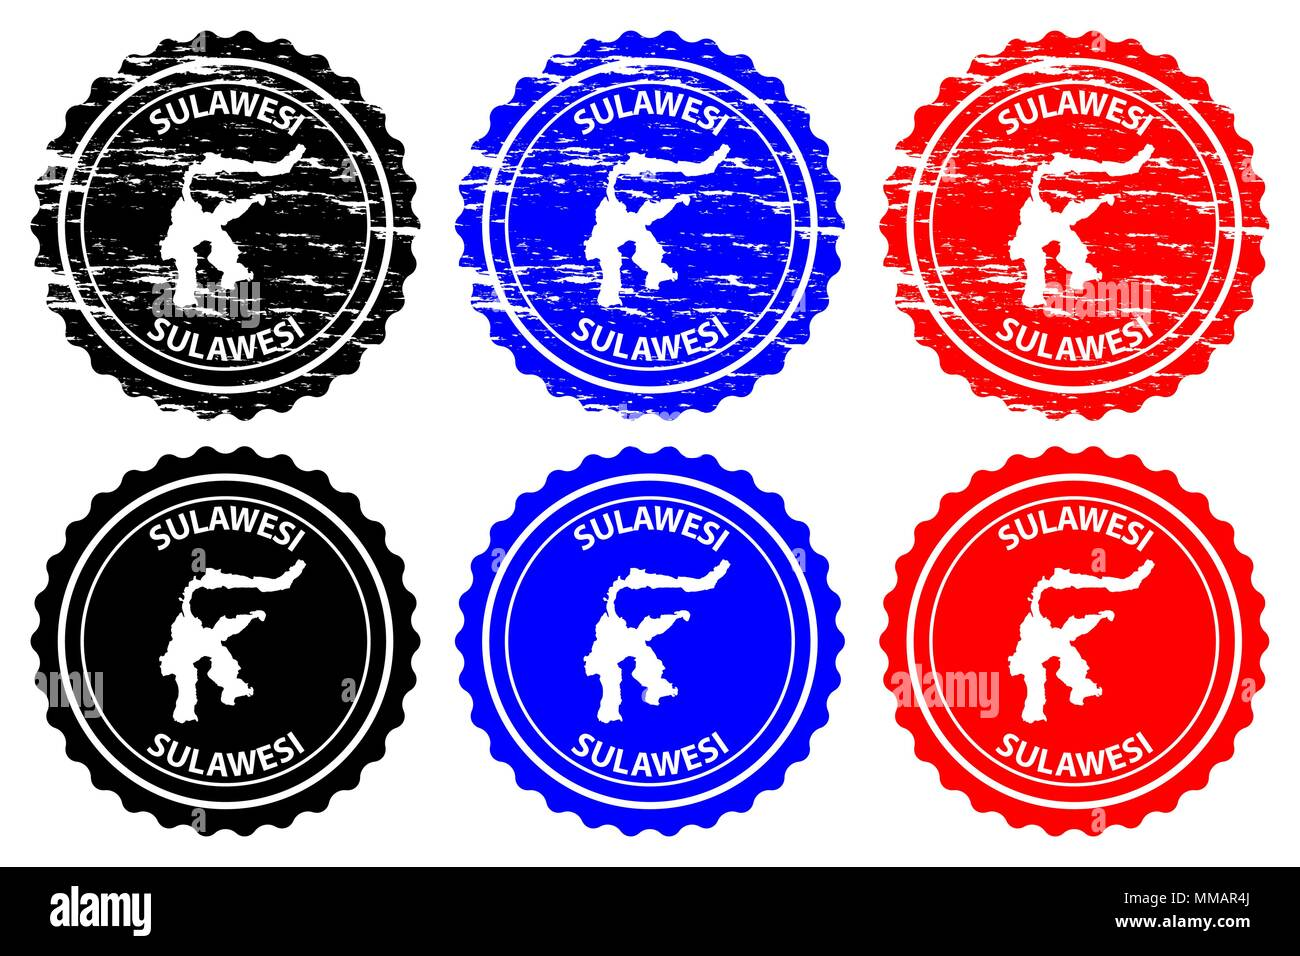 Sulawesi - rubber stamp - vector, Celebes map pattern - sticker - black, blue and red - Stock Vector